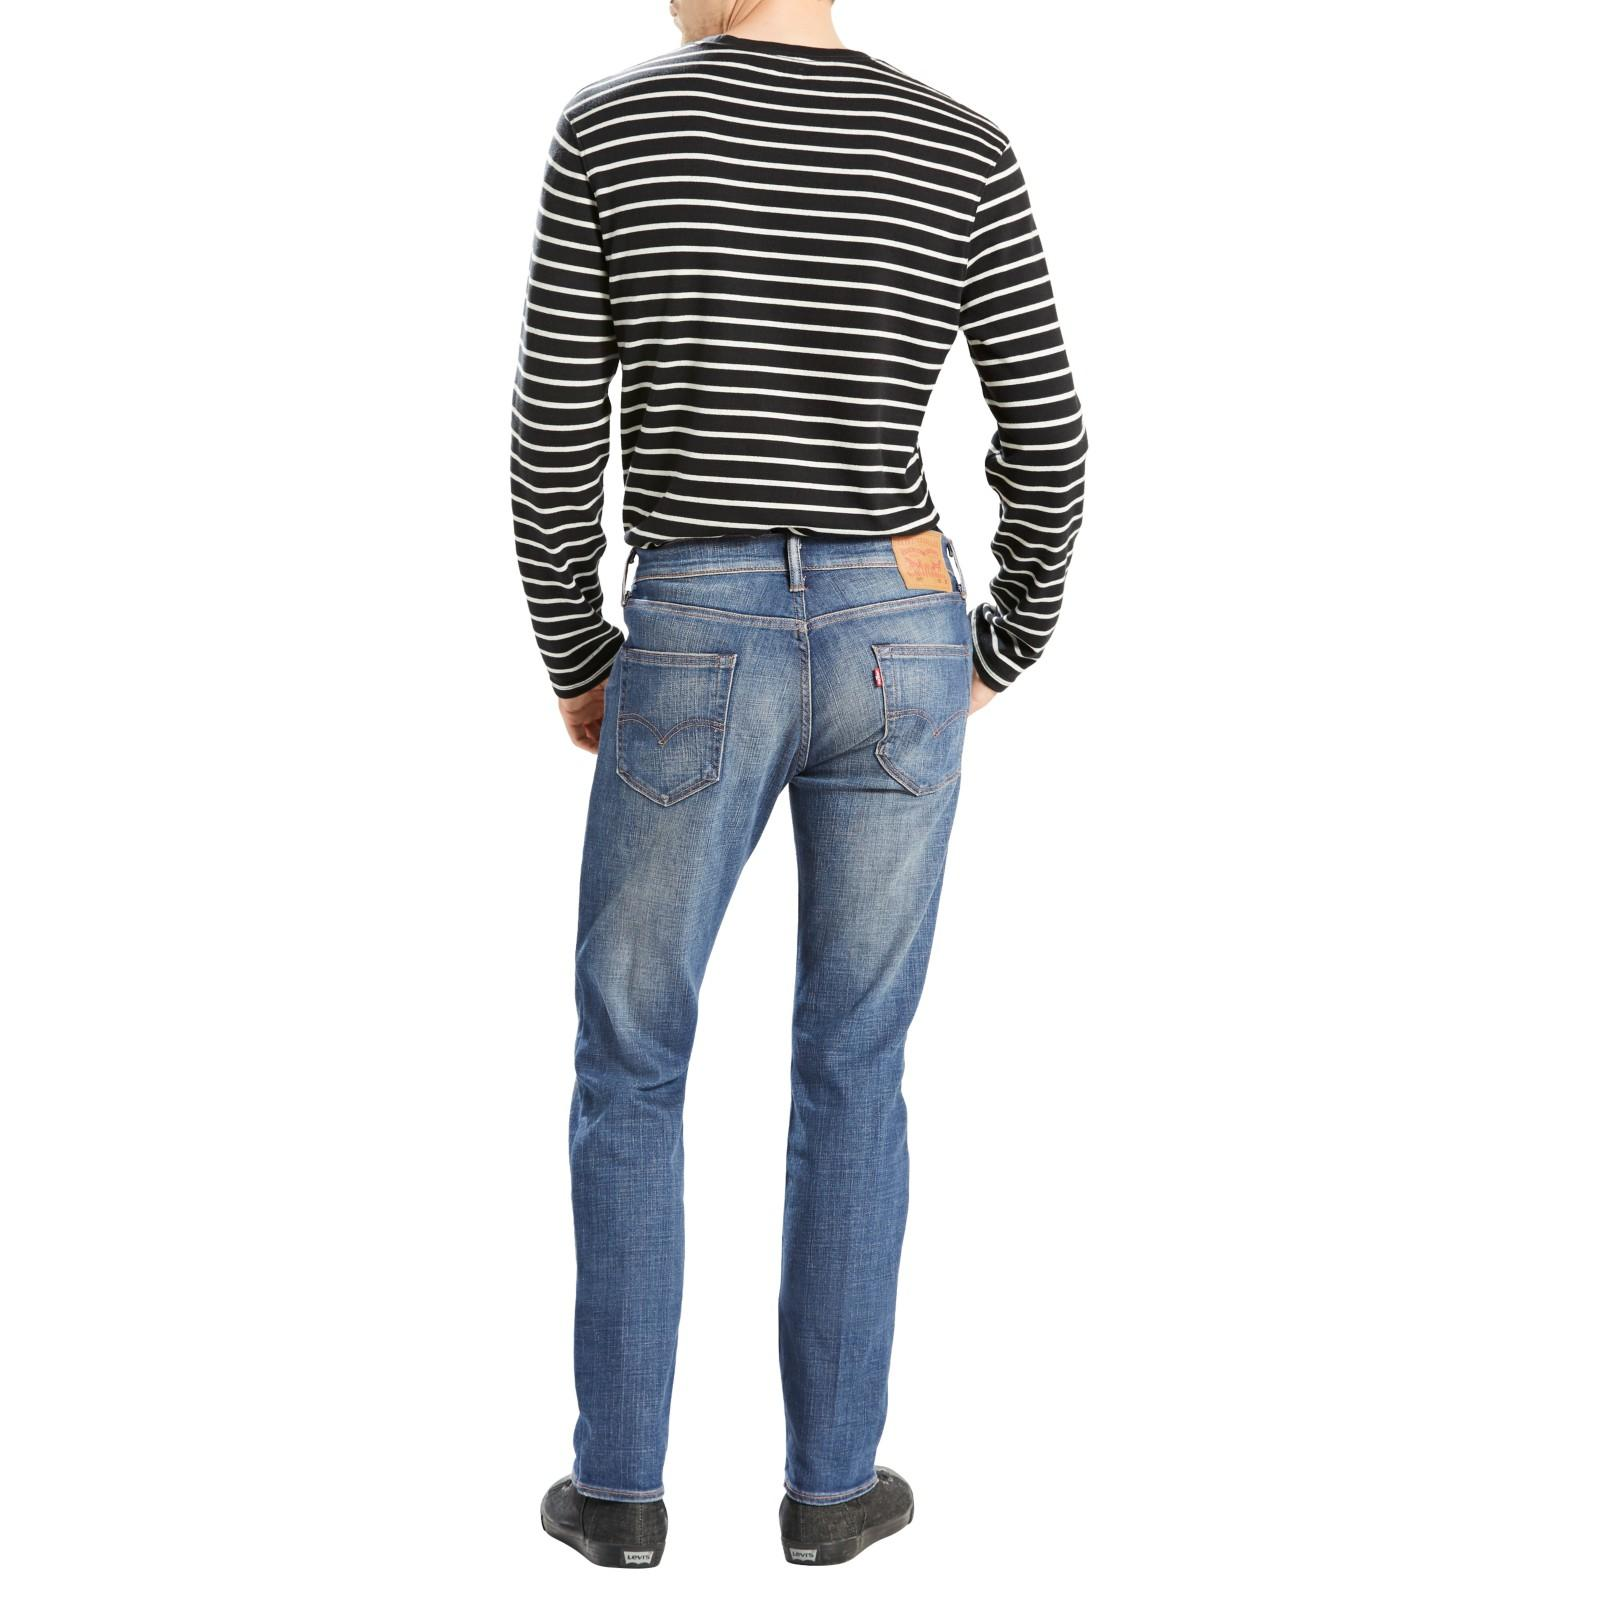 Levi's Denim 511 Slim Jeans for Men